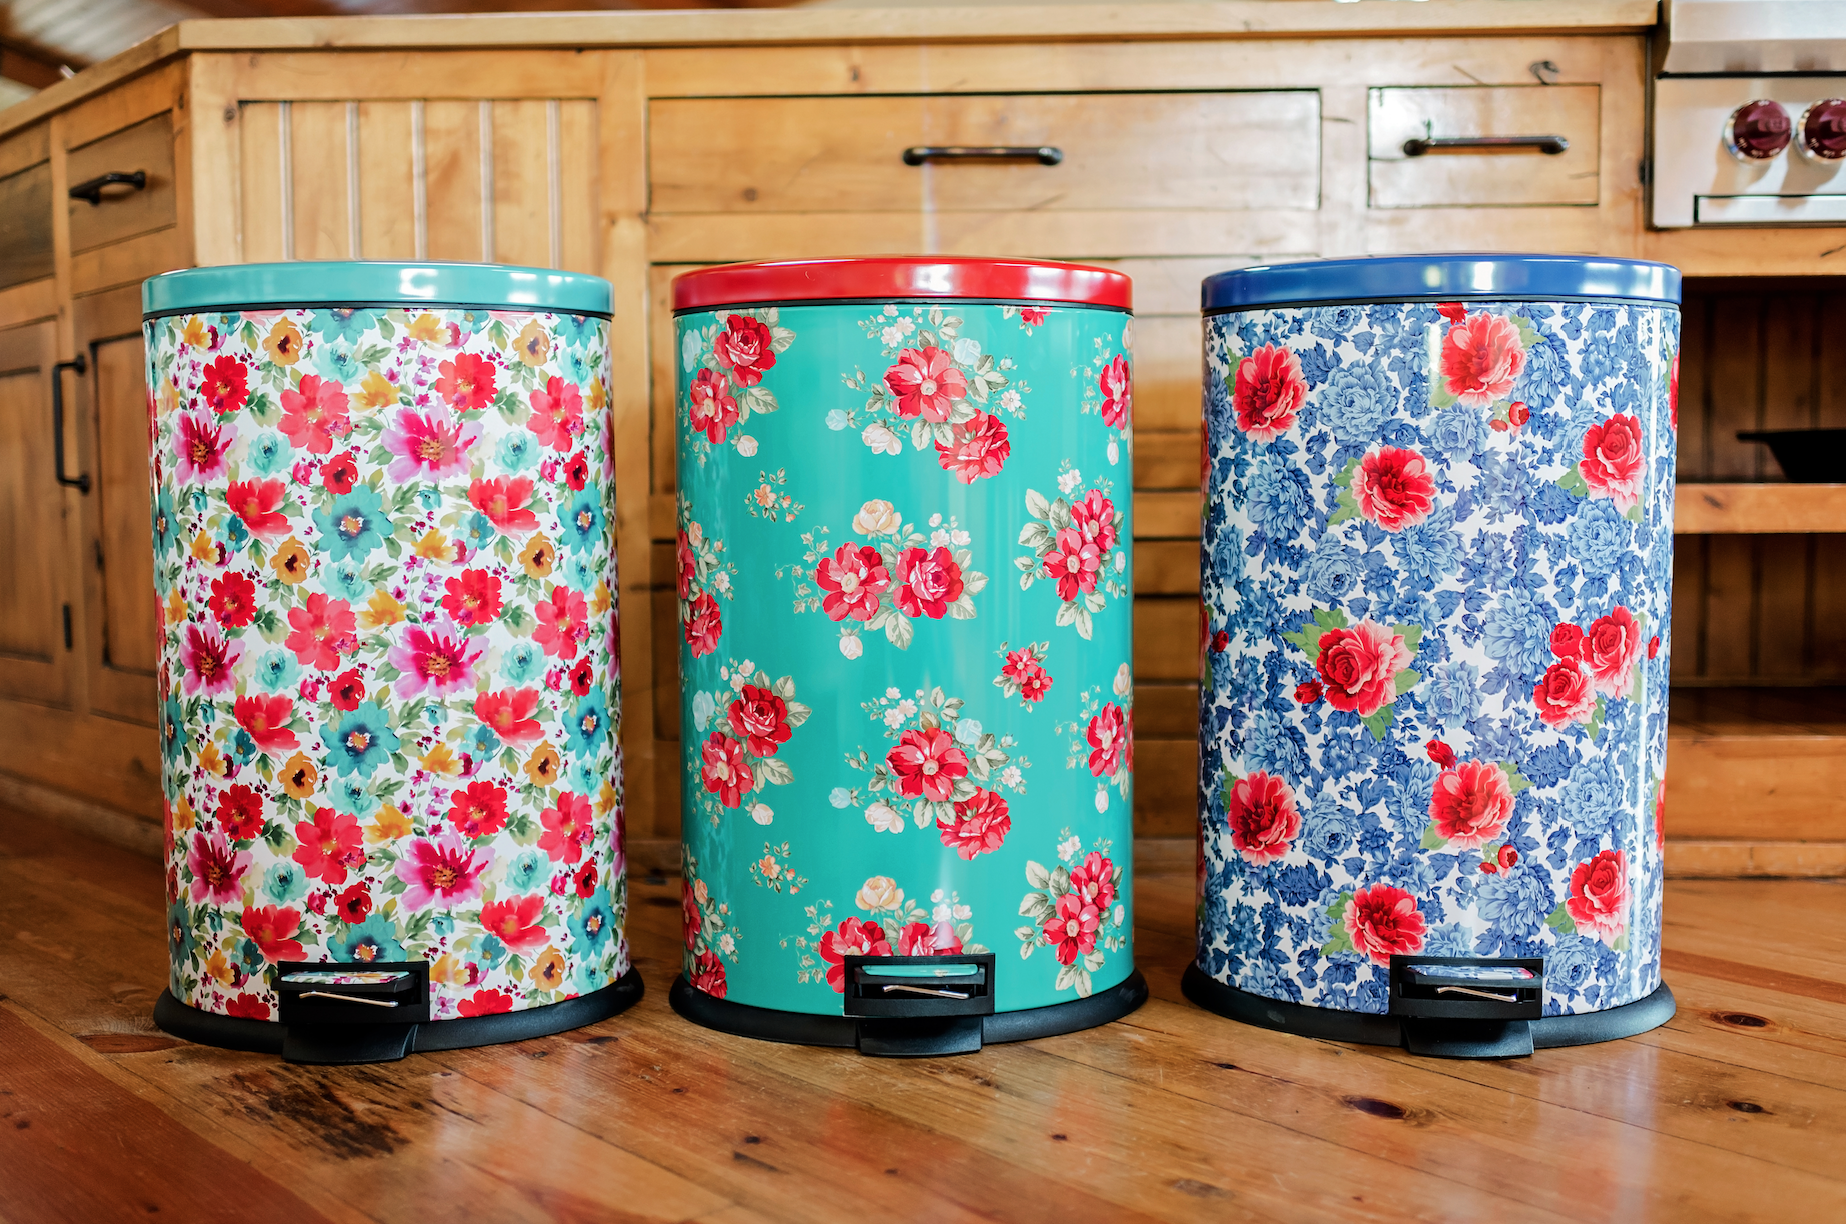 The Pioneer Woman Trash Cans Ree Drummond Trash Cans At Walmart